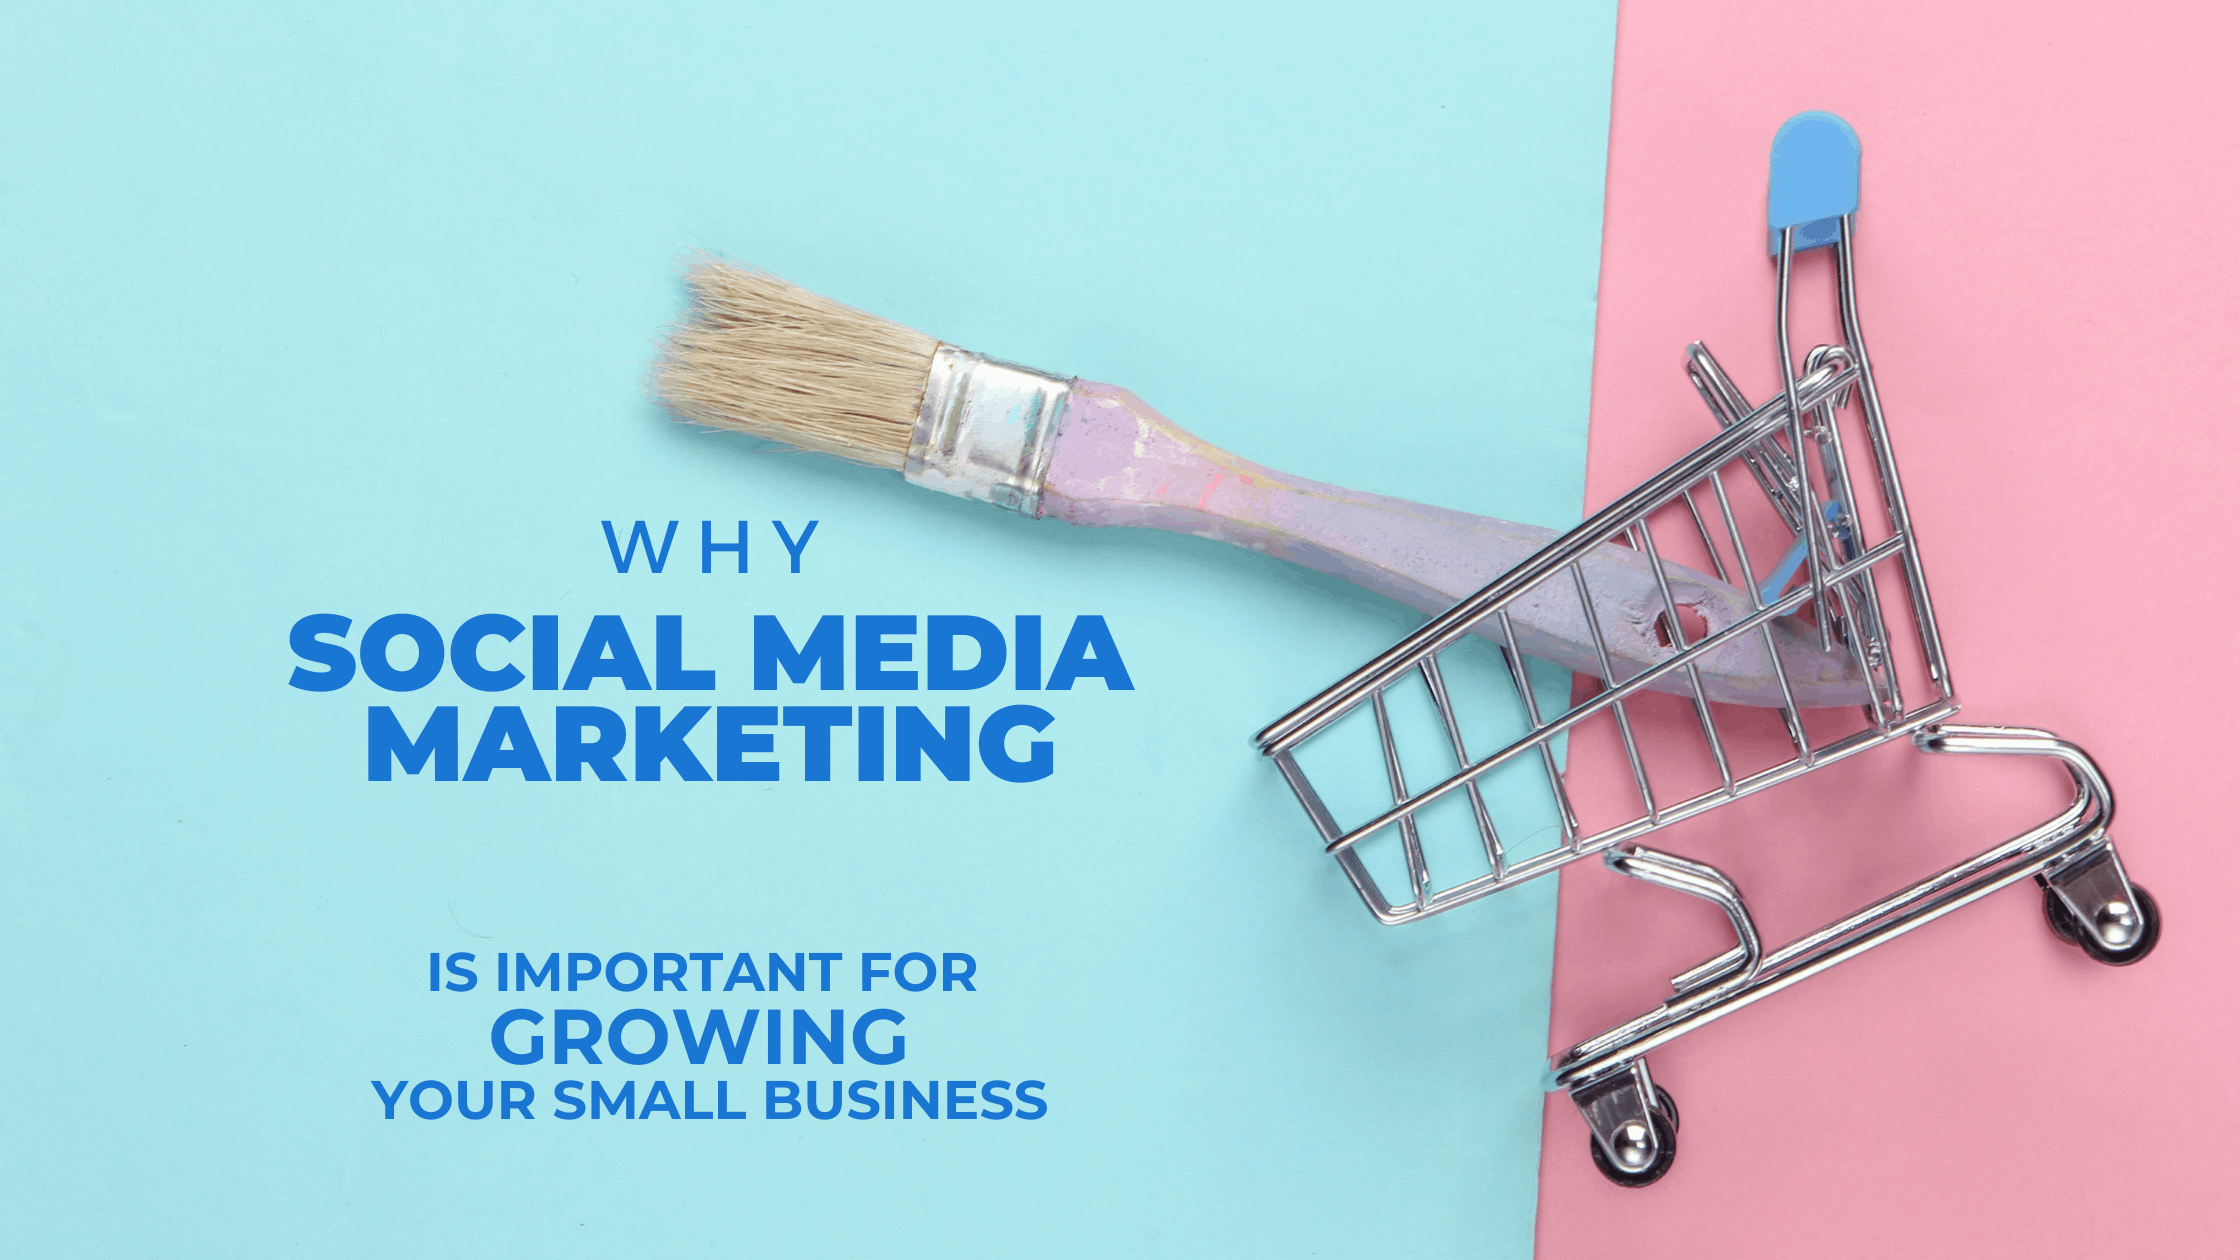 Why Social Media Marketing Is Important For Growing Your Small Business